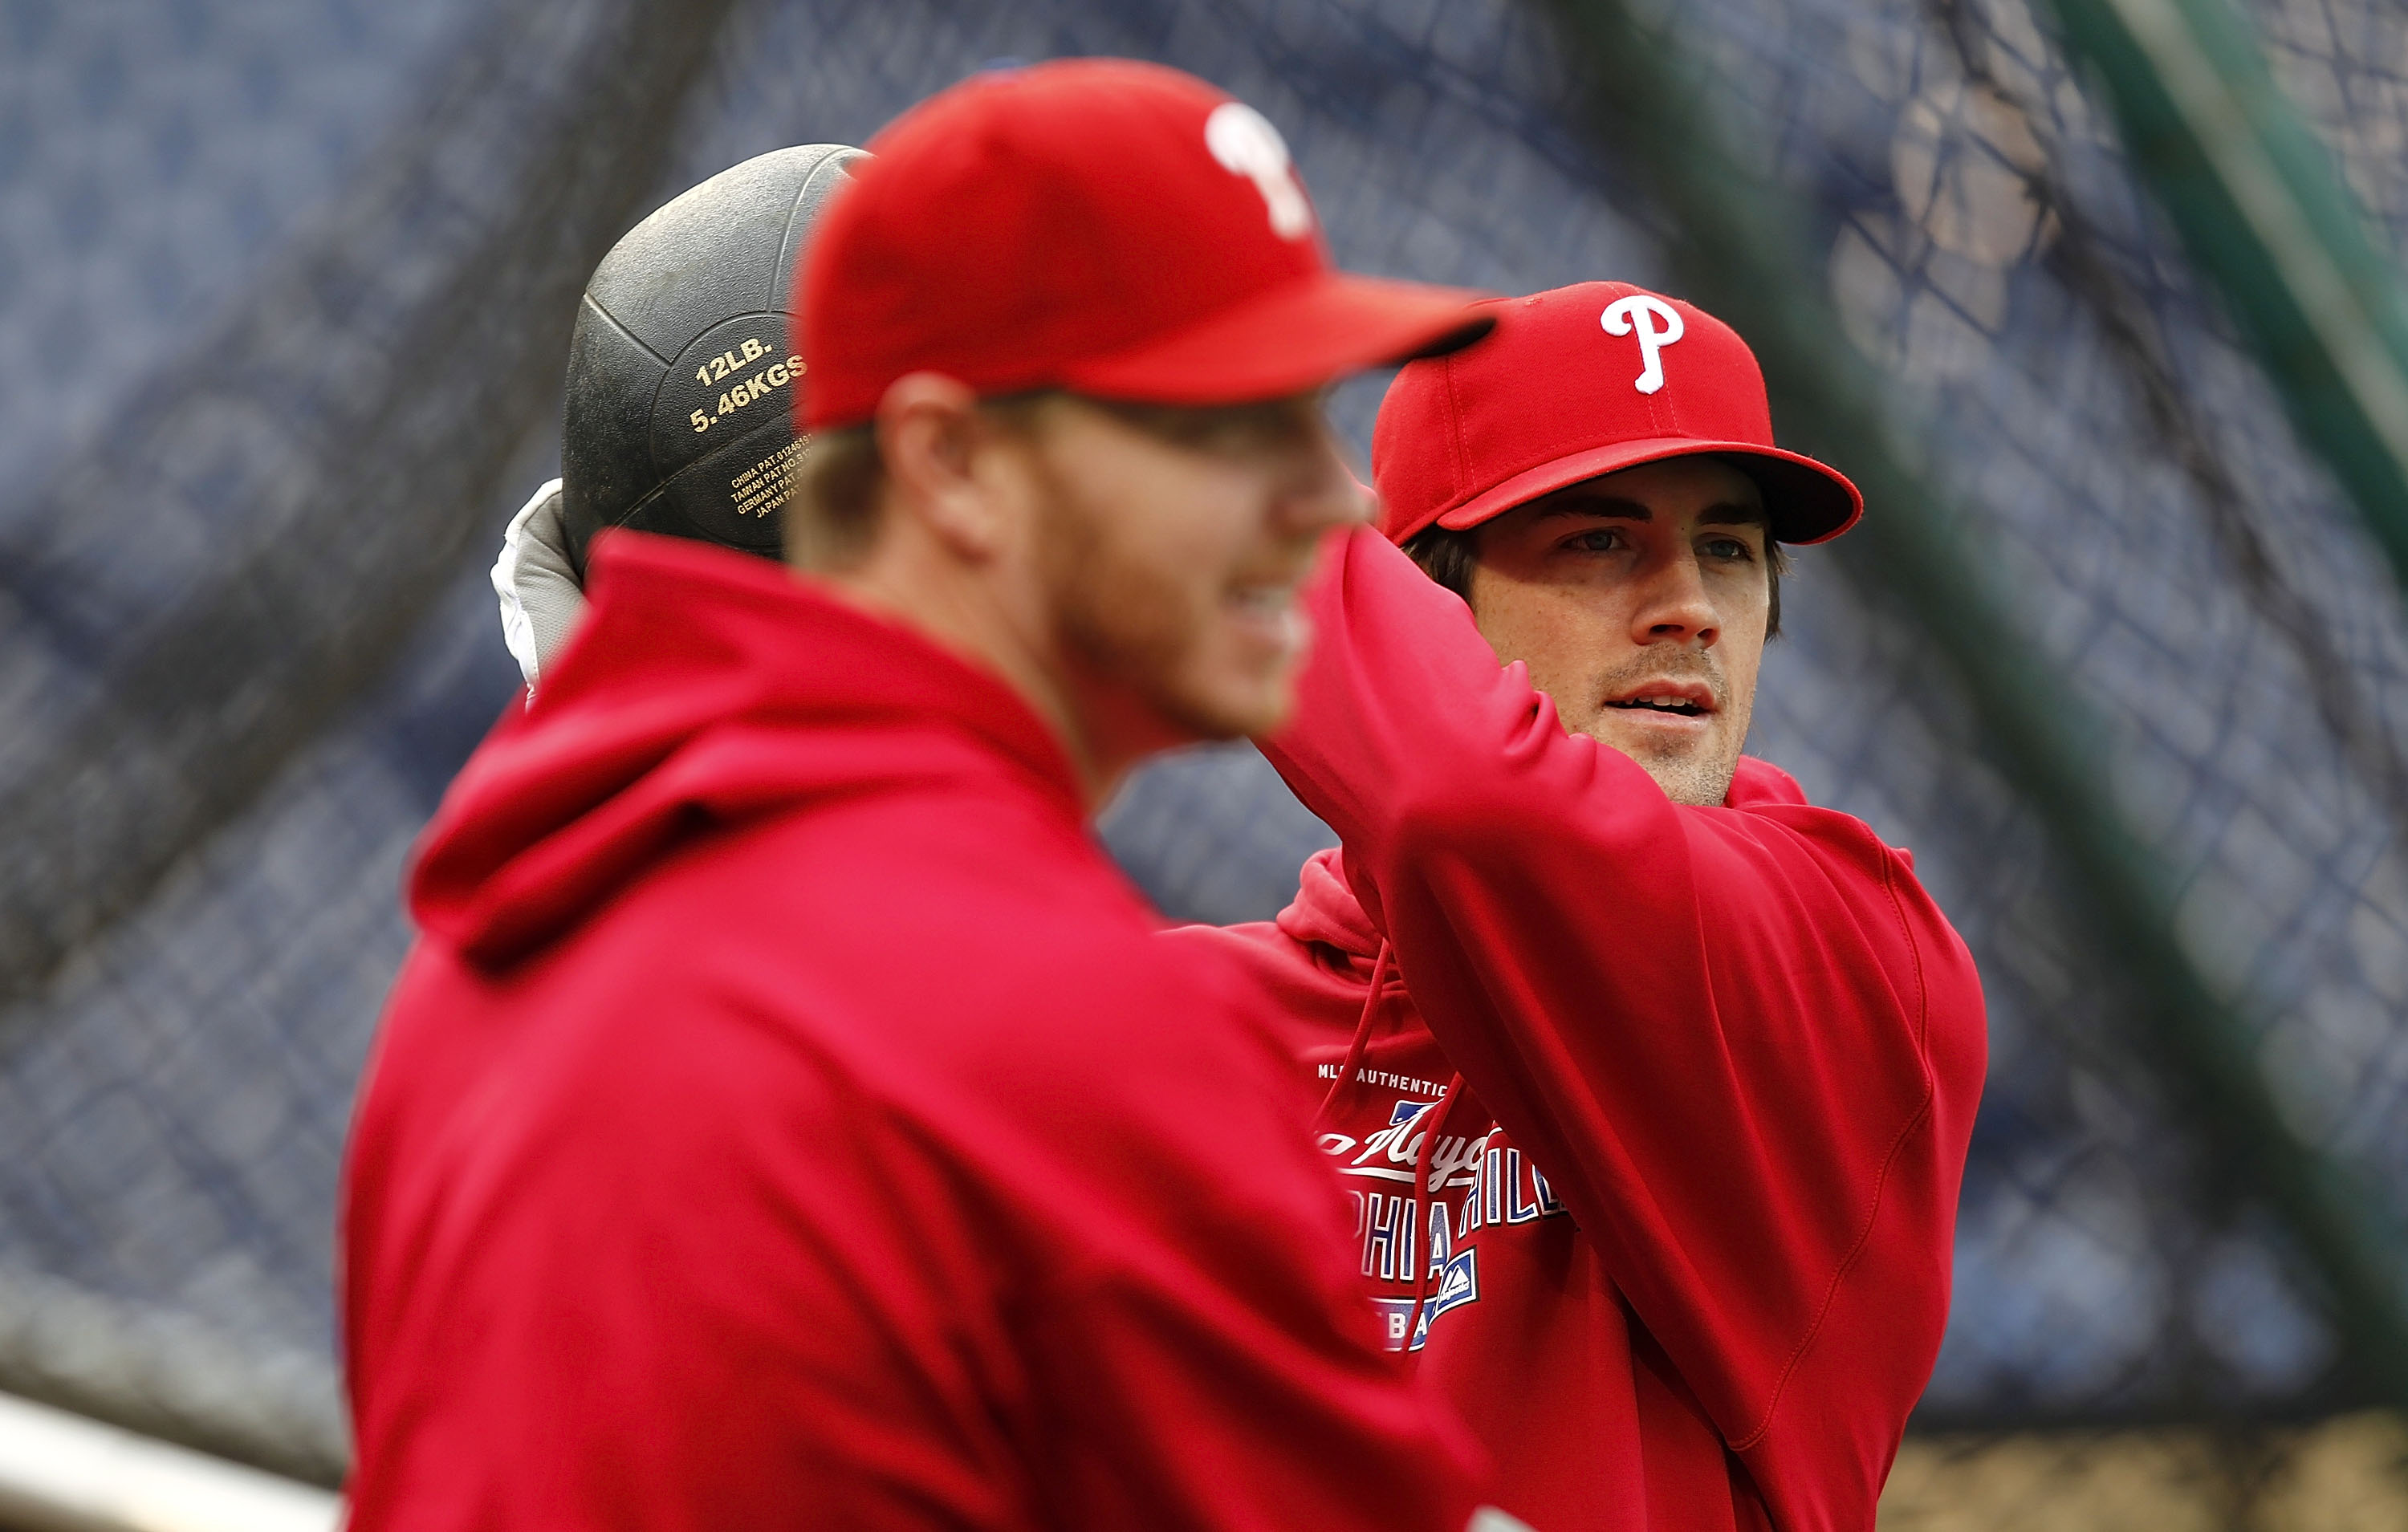 PHILADELPHIA - OCTOBER 15:  Cole Hamels #35 and Roy Halladay #34 of the Philadelphia Phillies stretch during a workout before the NLCS against the San Francisco Giants at Citizens Bank Park on October 15, 2010 in Philadelphia, Pennsylvania.  (Photo by Jef